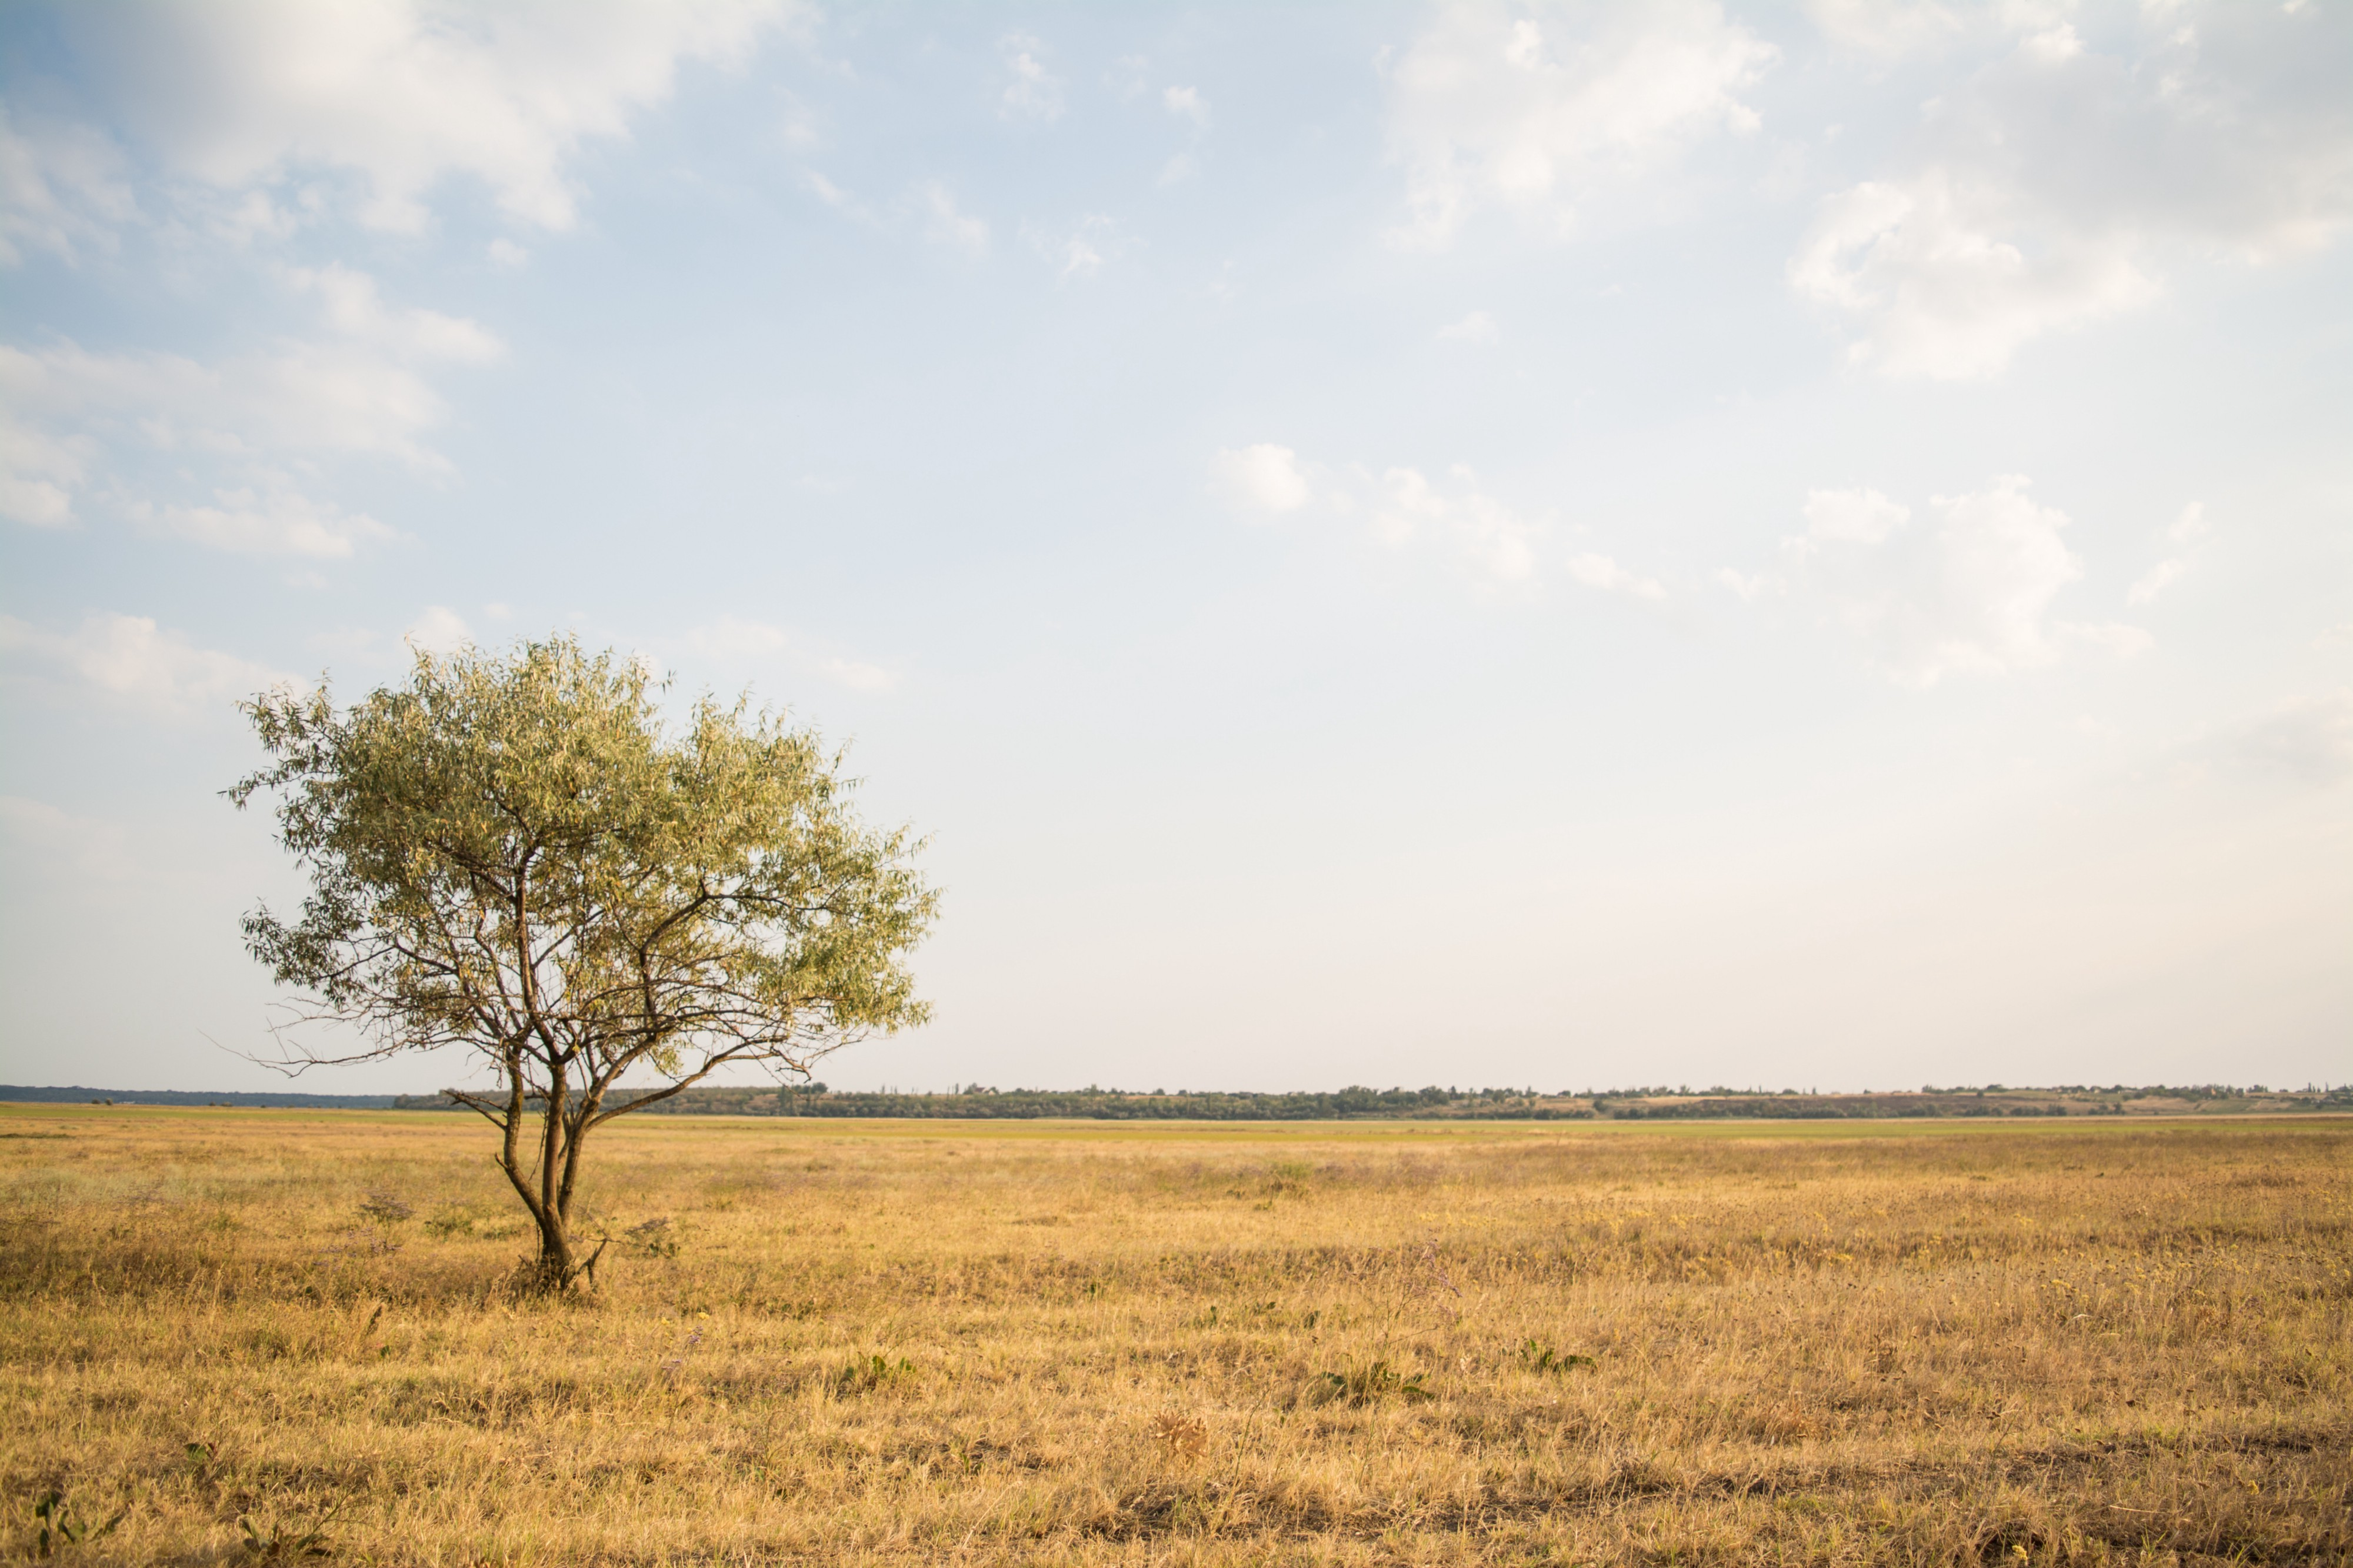 Landscape photography using the rule of thirds